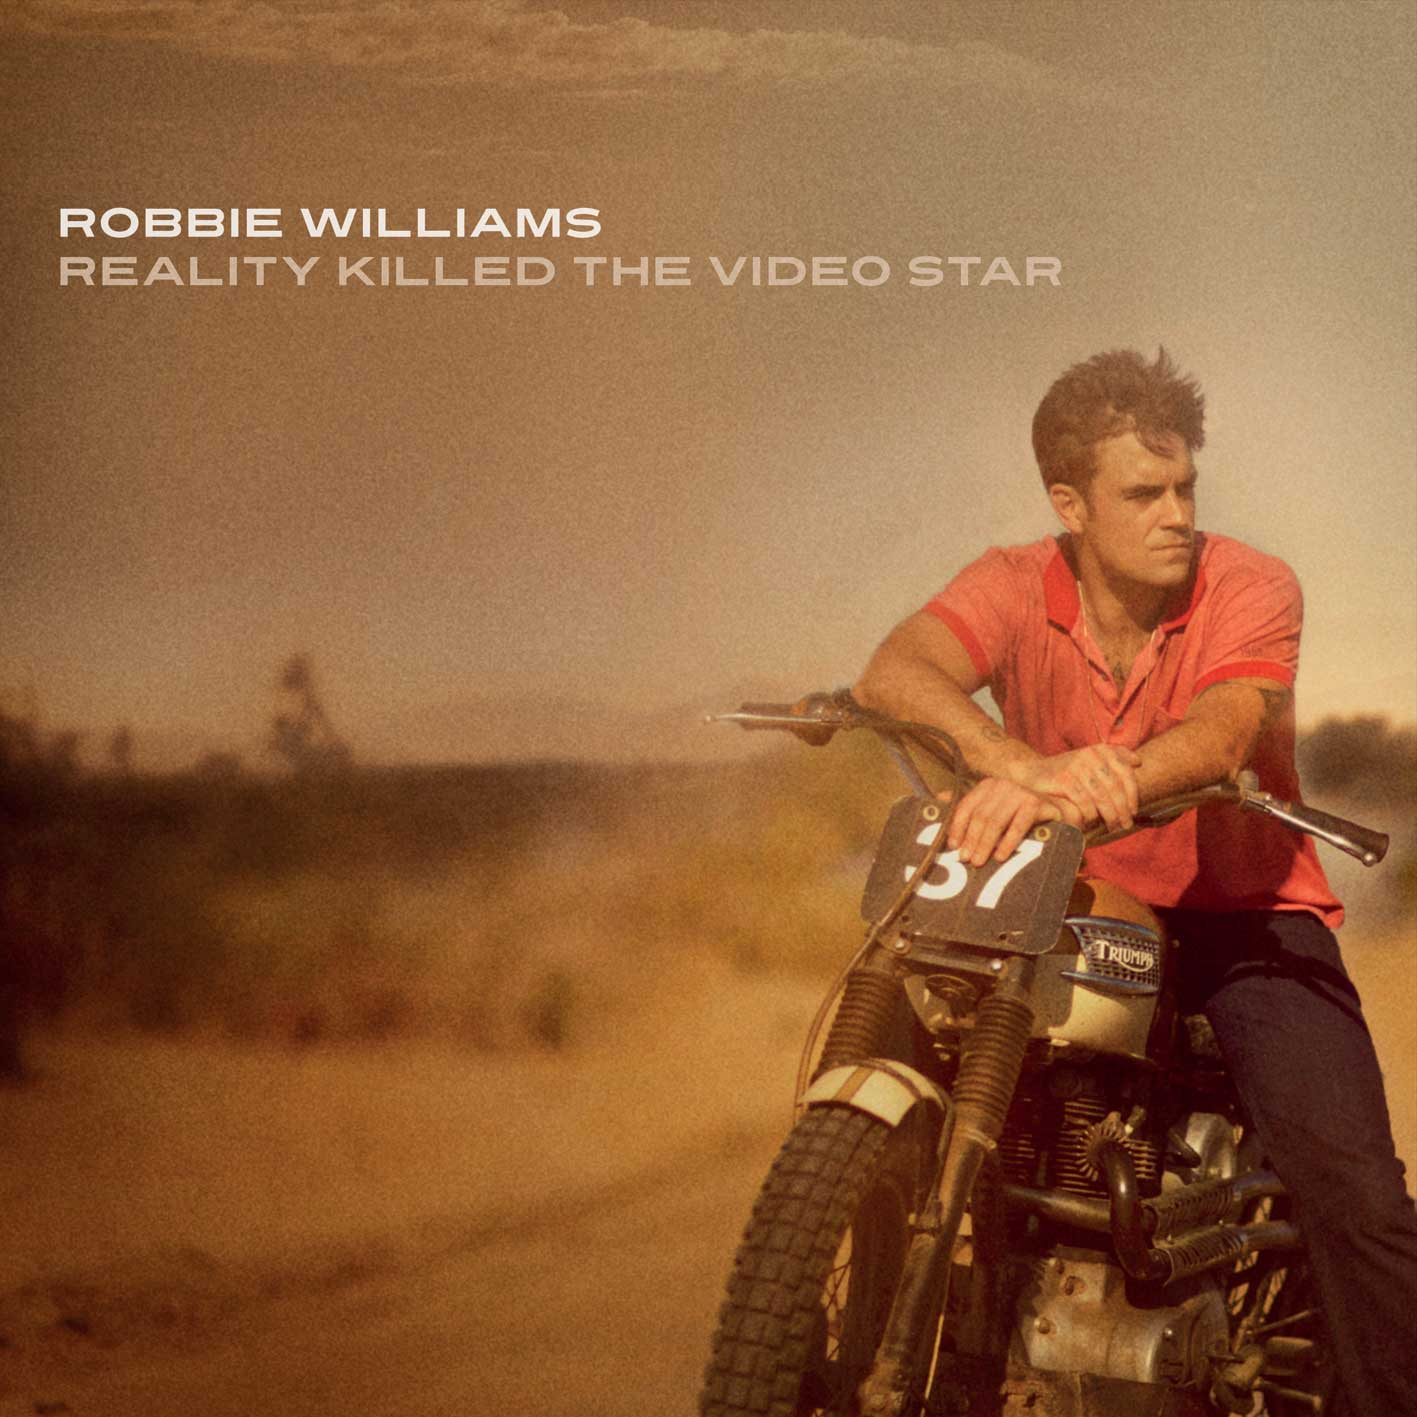 Robbie Williams, Reality Killed the Video Star